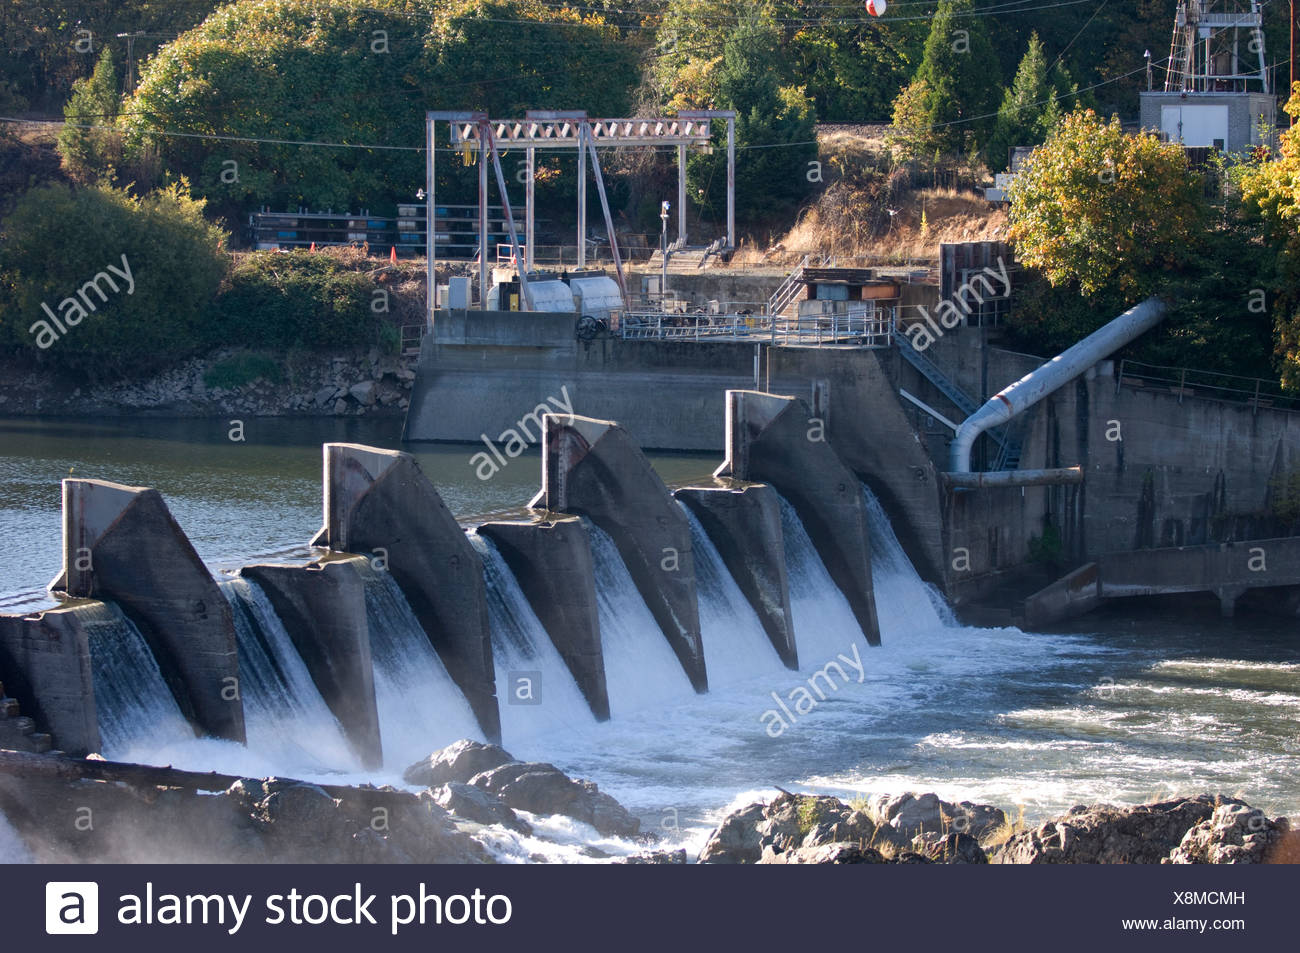 Savage Rapids Dam, which is slated to be removed from the Rogue River. Stock Photo